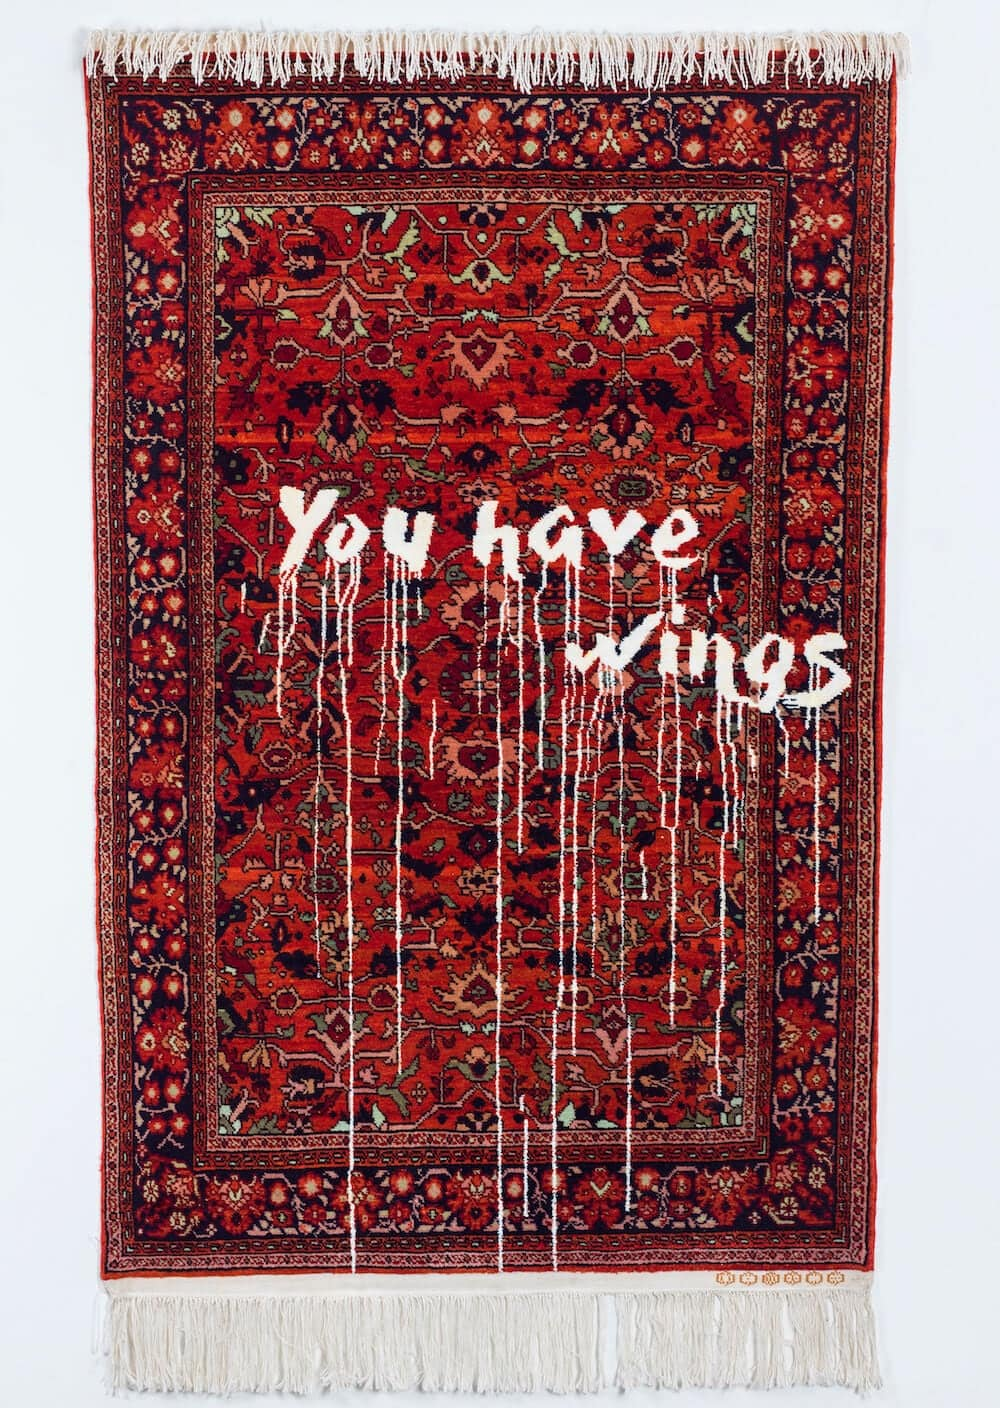 faig ahmed 10 - Artist Faig Ahmed Designed Glitched-Out Rugs from Traditional Textiles